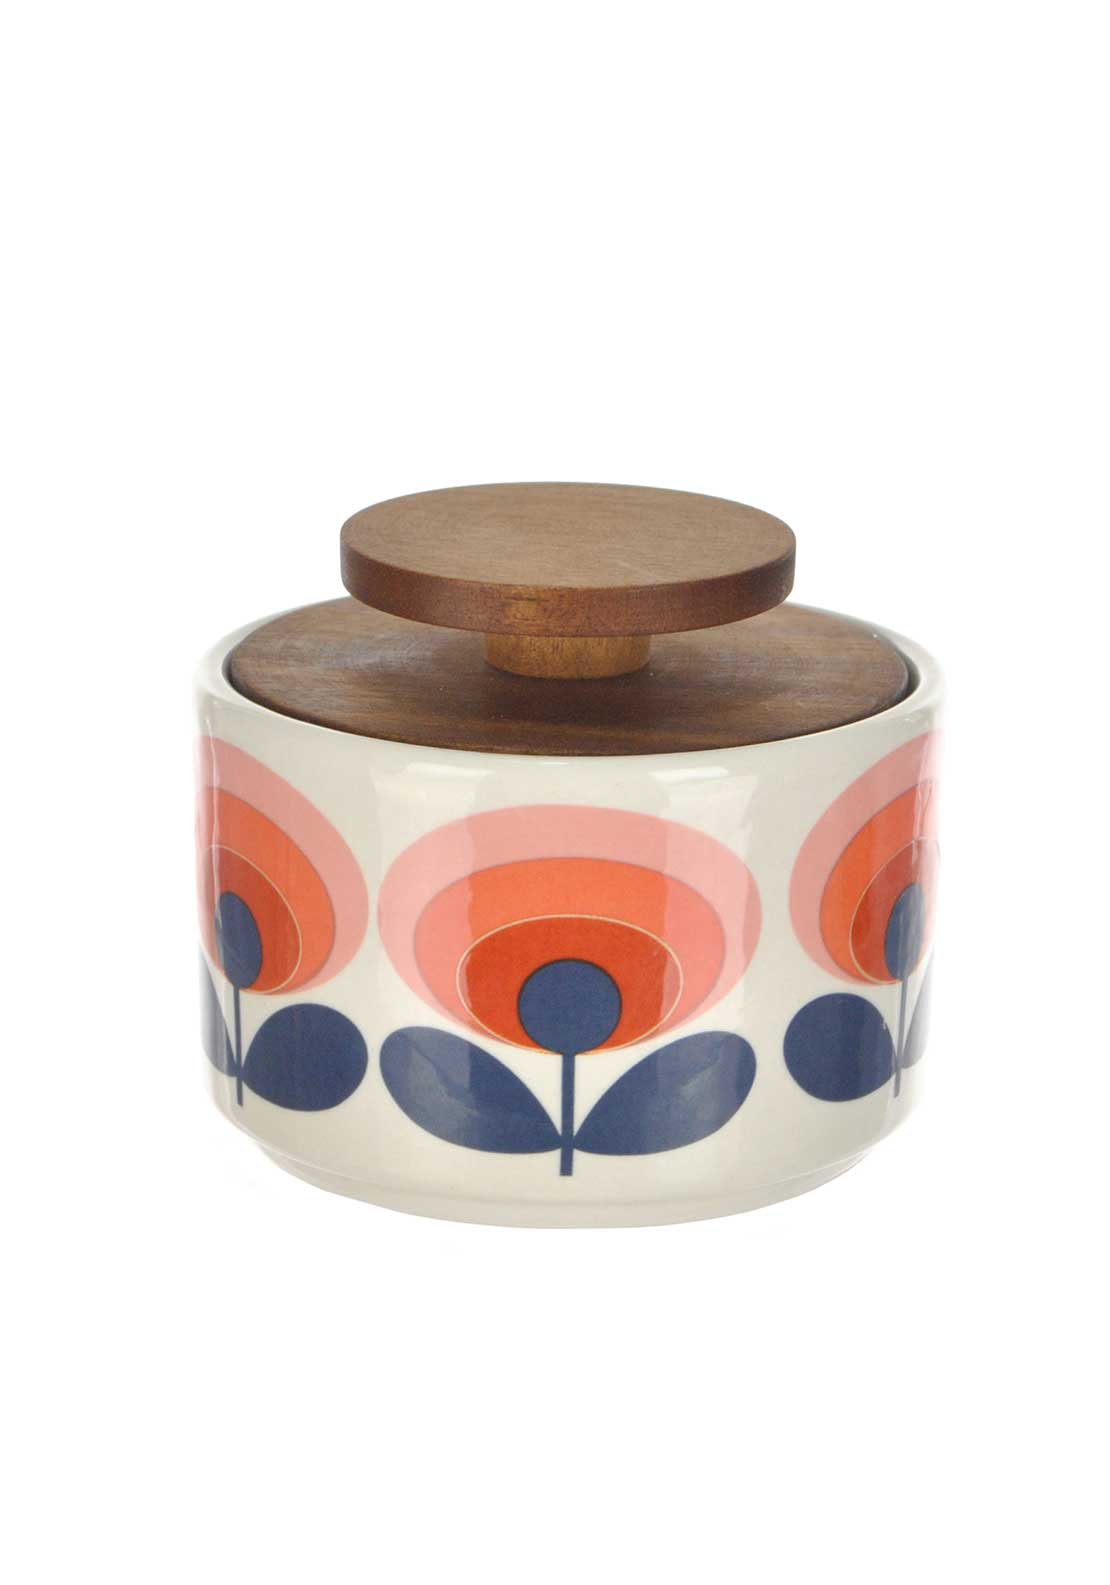 Orla Kiely House Sugar Bowl, Red Floral Print